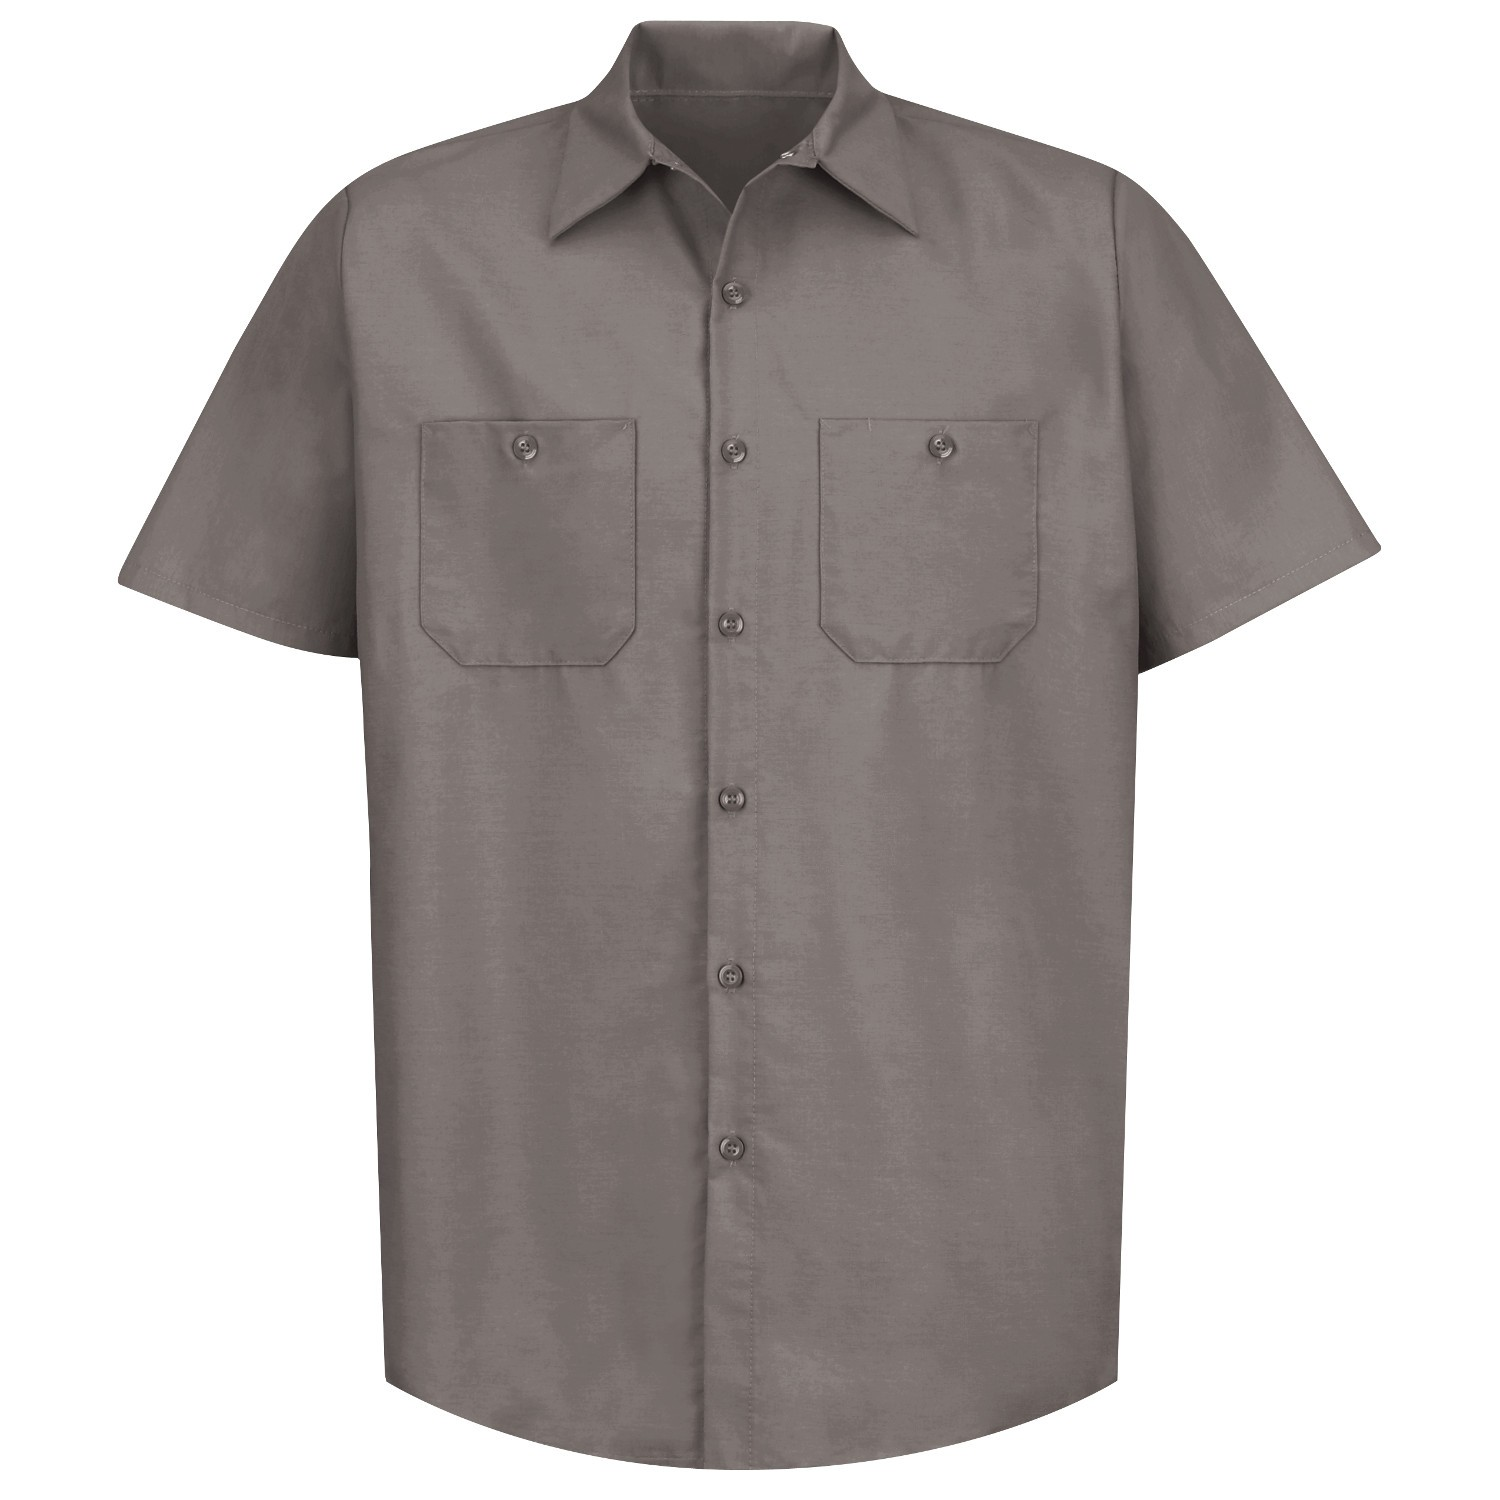 a5c6b9e5 Red Kap SP24 Men's Industrial Work Shirt - Short Sleeve - Grey ...